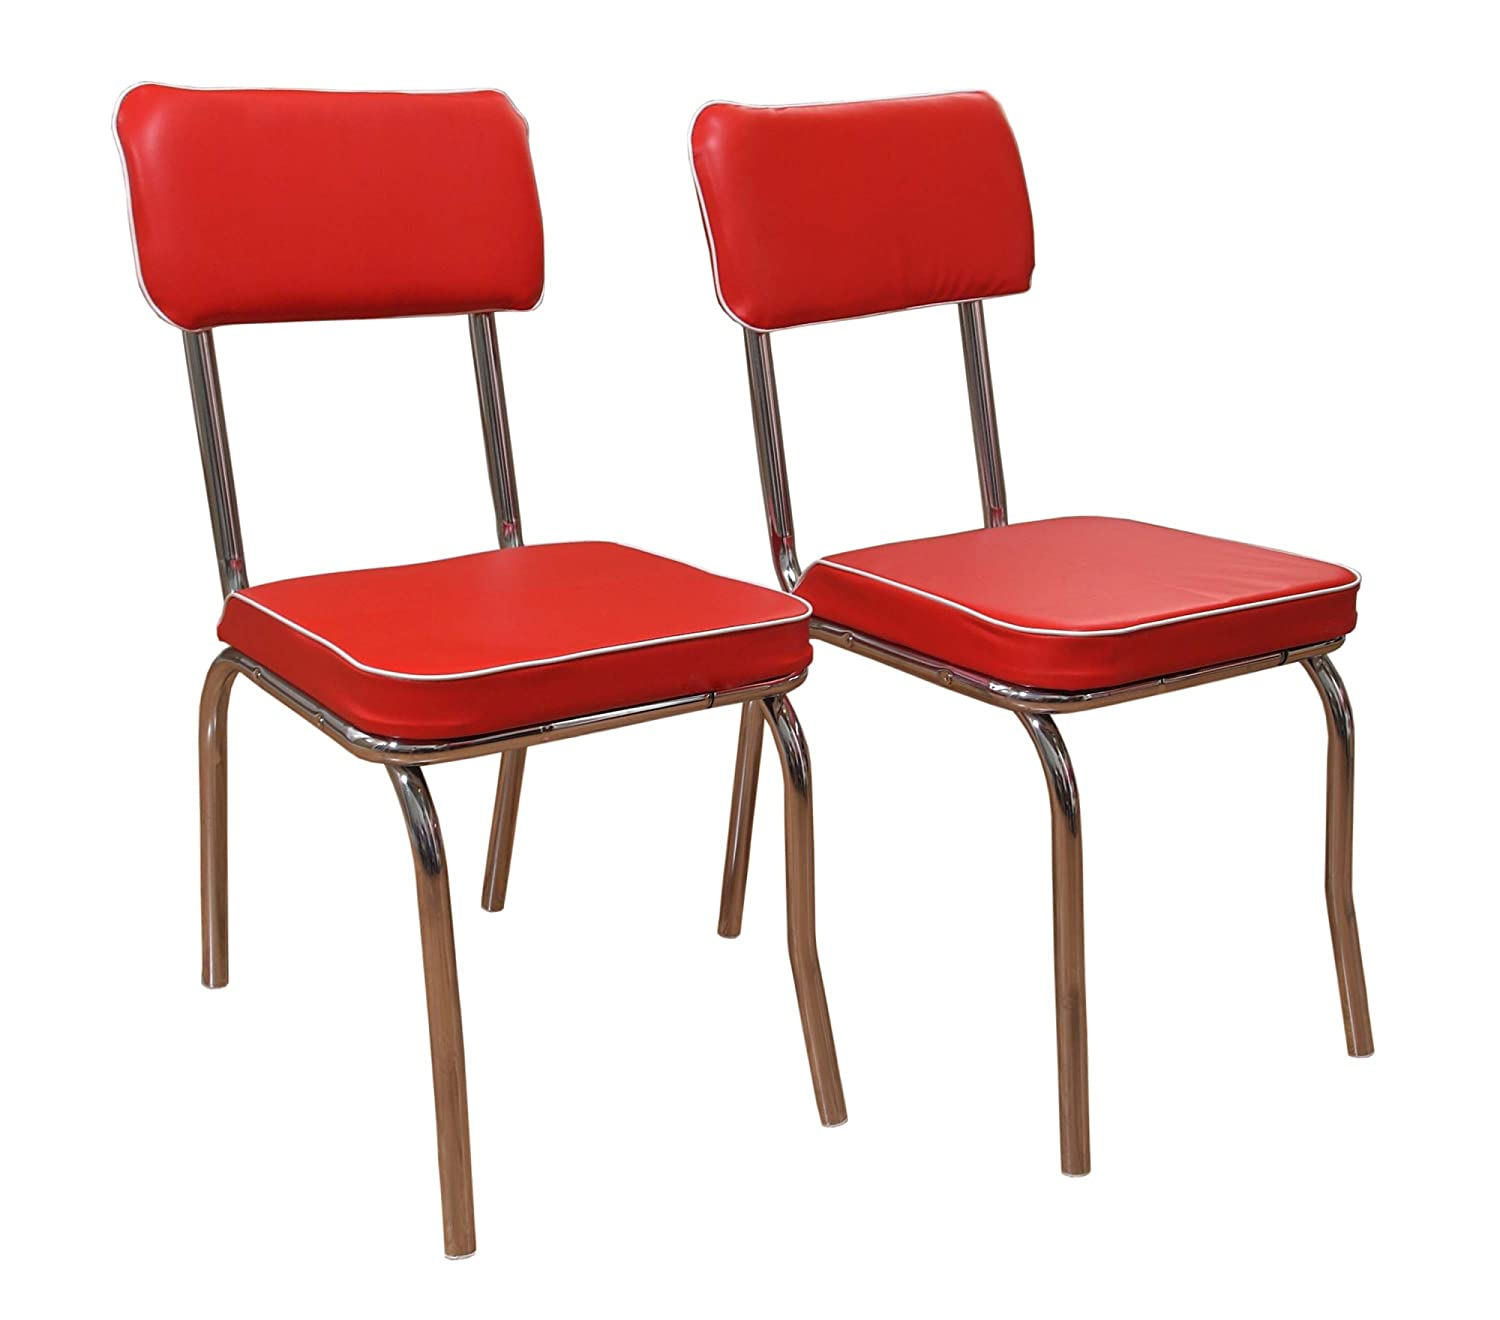 red upholstered dining chairs. Amazon.com: Target Marketing Systems Set Of 2 Retro Upholstered Vinyl Dining Chairs With Chrome Accents, Red: Kitchen \u0026 Red A